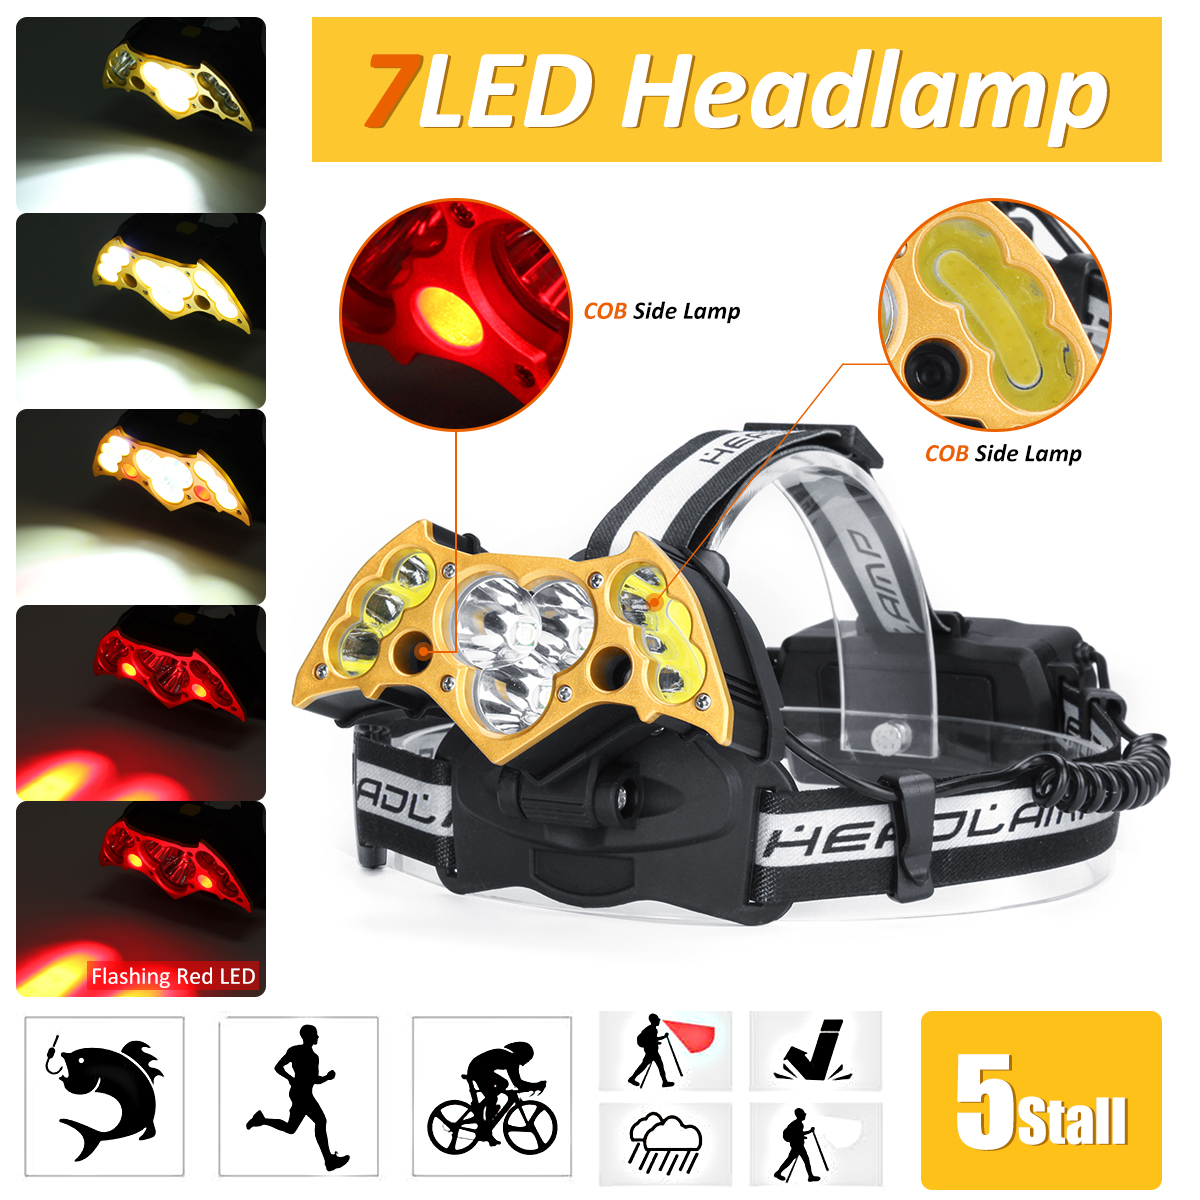 Smuxi Headlight 3*T6 + 2*COB + 2* Red LED Head Lamp USB Rechargeable Flashlight Torch Head Light Fishing Lanterna 18650 Battery 30w led cob usb rechargeable 18650 cob led headlamp headlight fishing torch flashlight